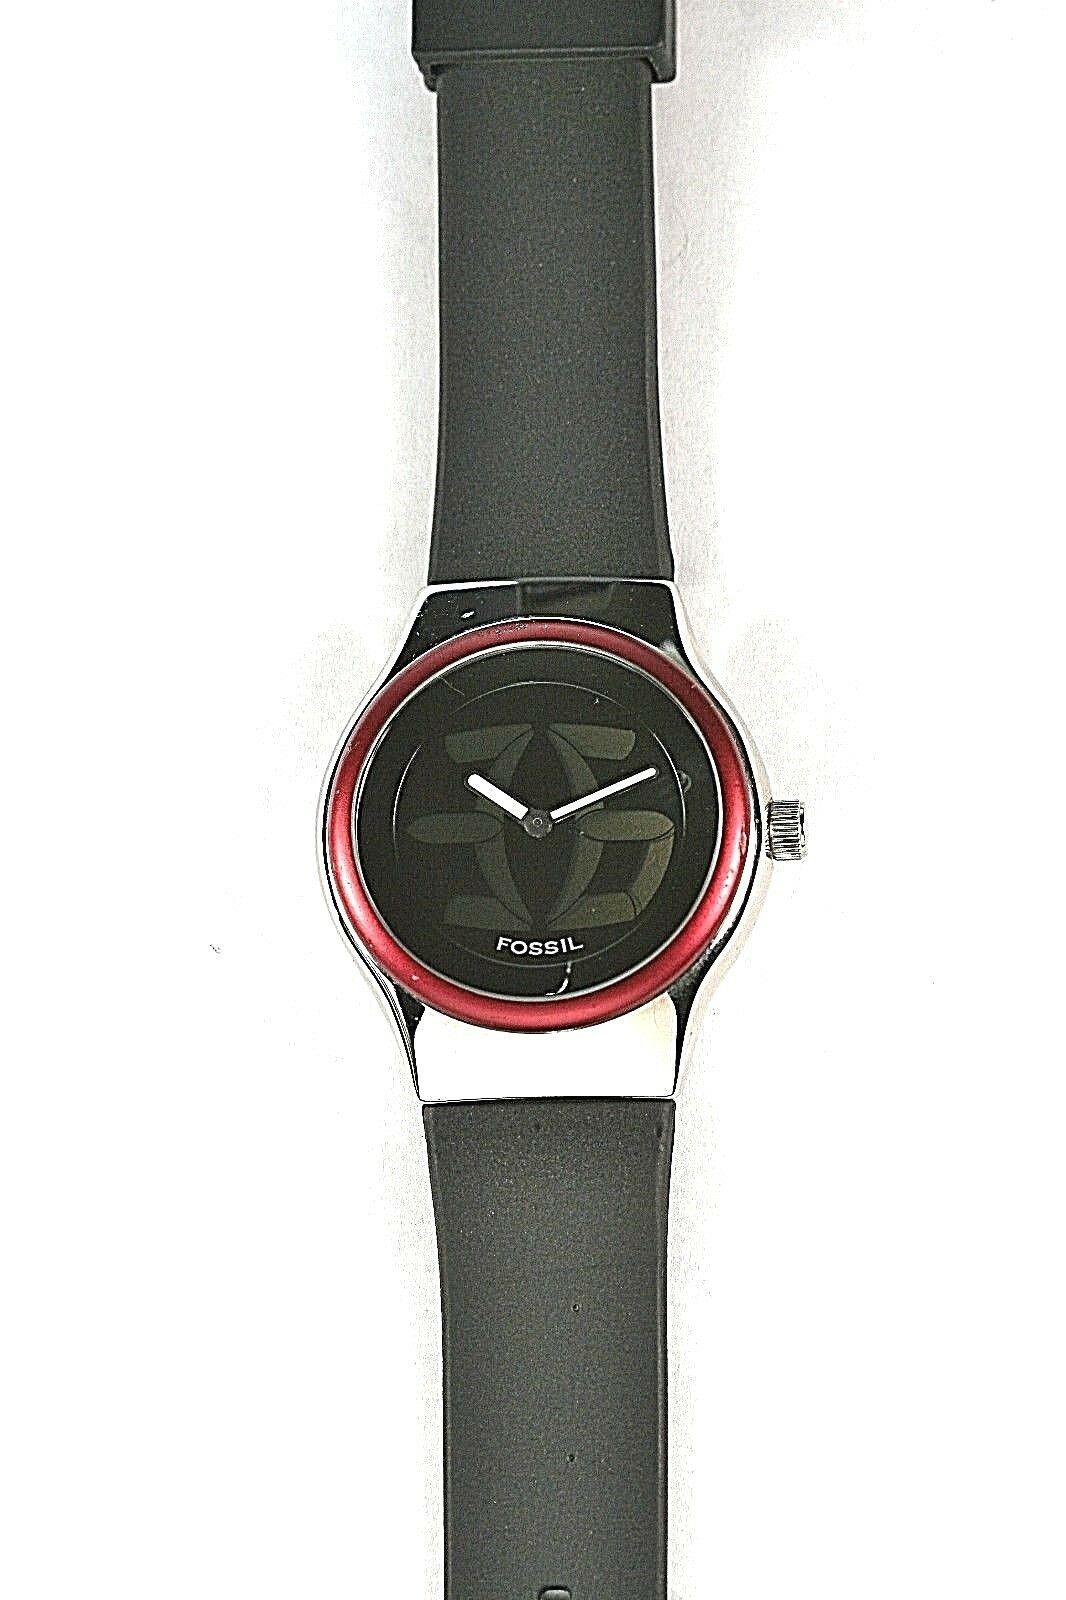 Primary image for Big Tic Fossil Mans 50m Water Resistant Easy Read Silver Red Mtl Sport Watch $49